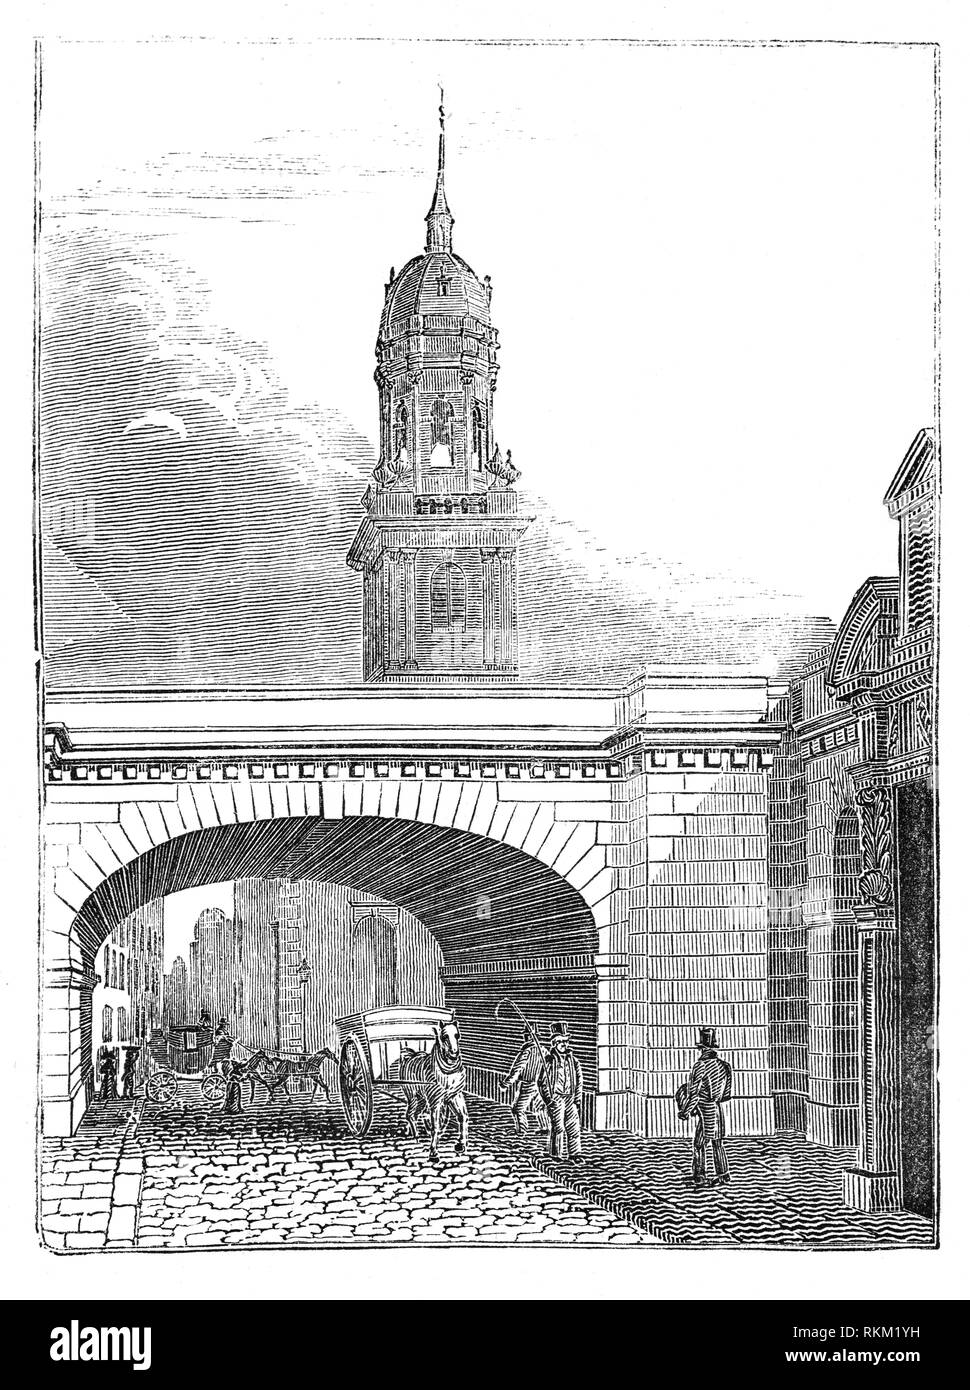 The clock tower, built in 1706, of St Magnus the Martyr on Lower Thames Street seen through an arch of the new London Bridge opened in 1831 from a design by John Rennie. - Stock Image